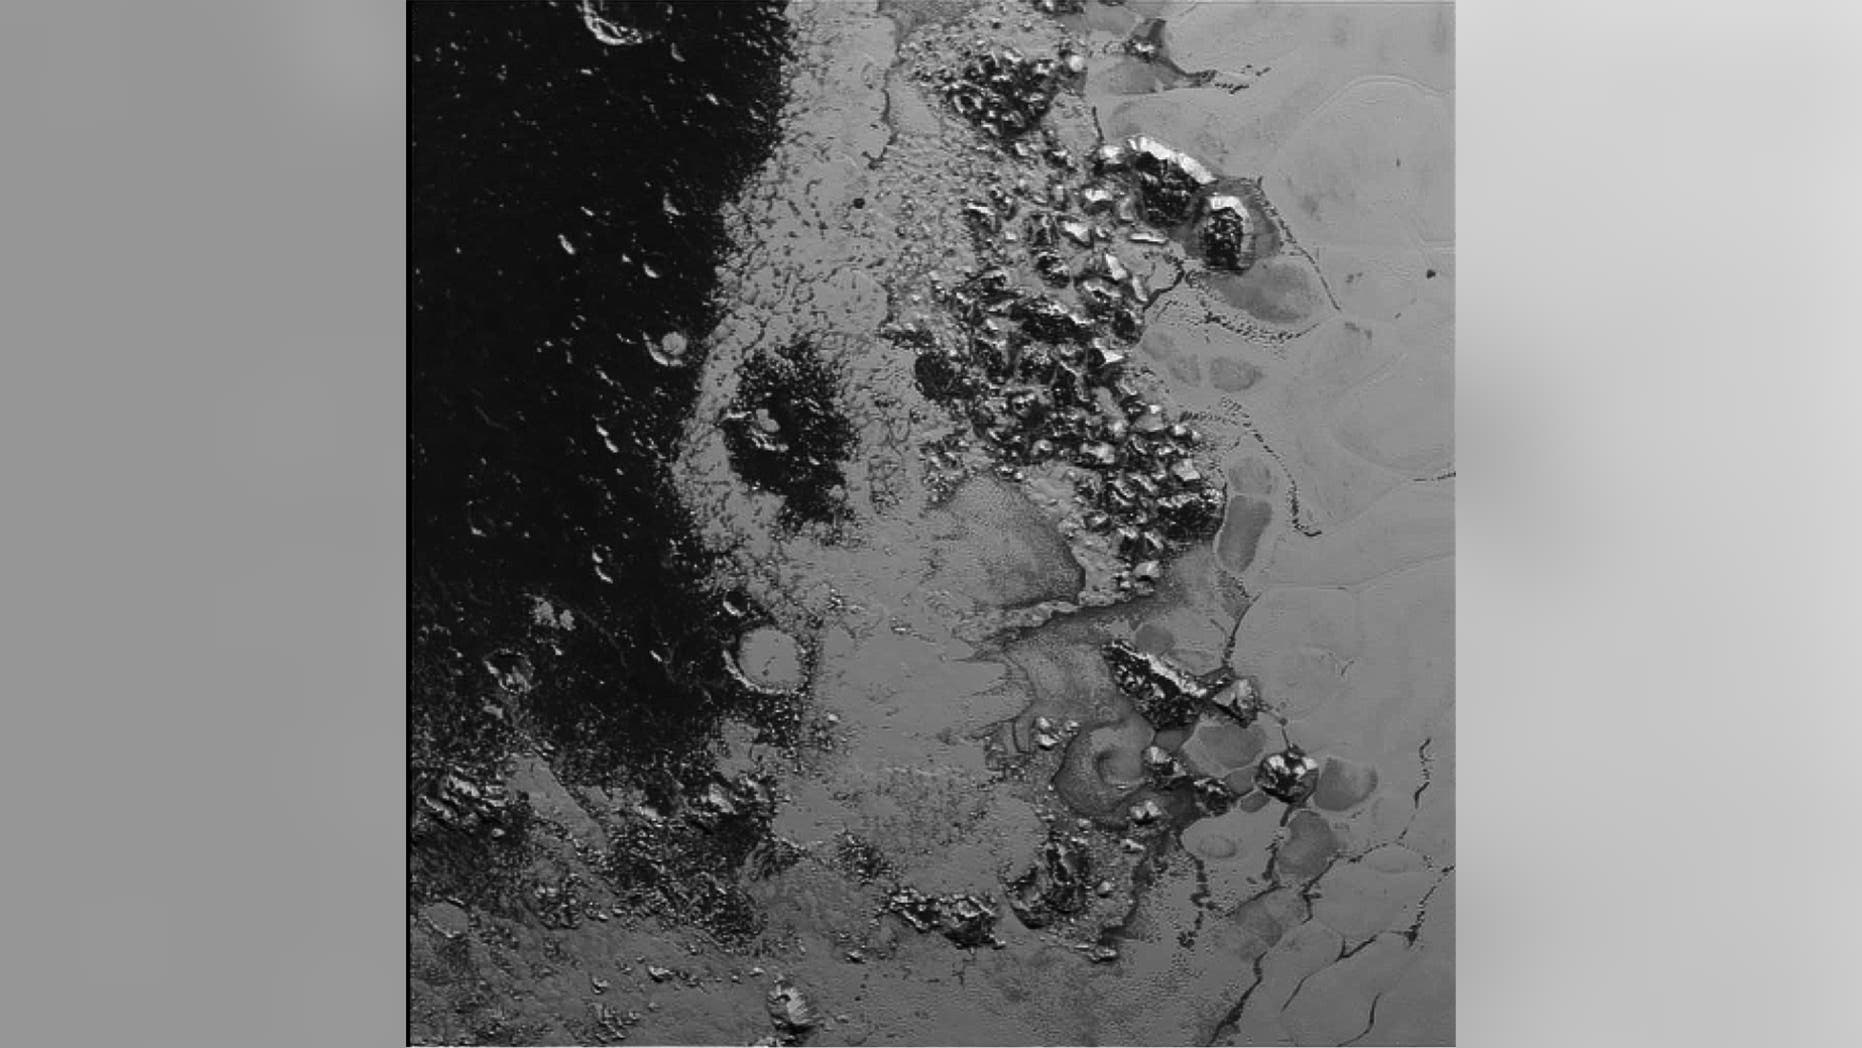 Image acquired by New Horizons' Long Range Reconnaissance Imager (LORRI) on July 14, 2015 from a distance of 48,000 miles and sent back to Earth on July 20.